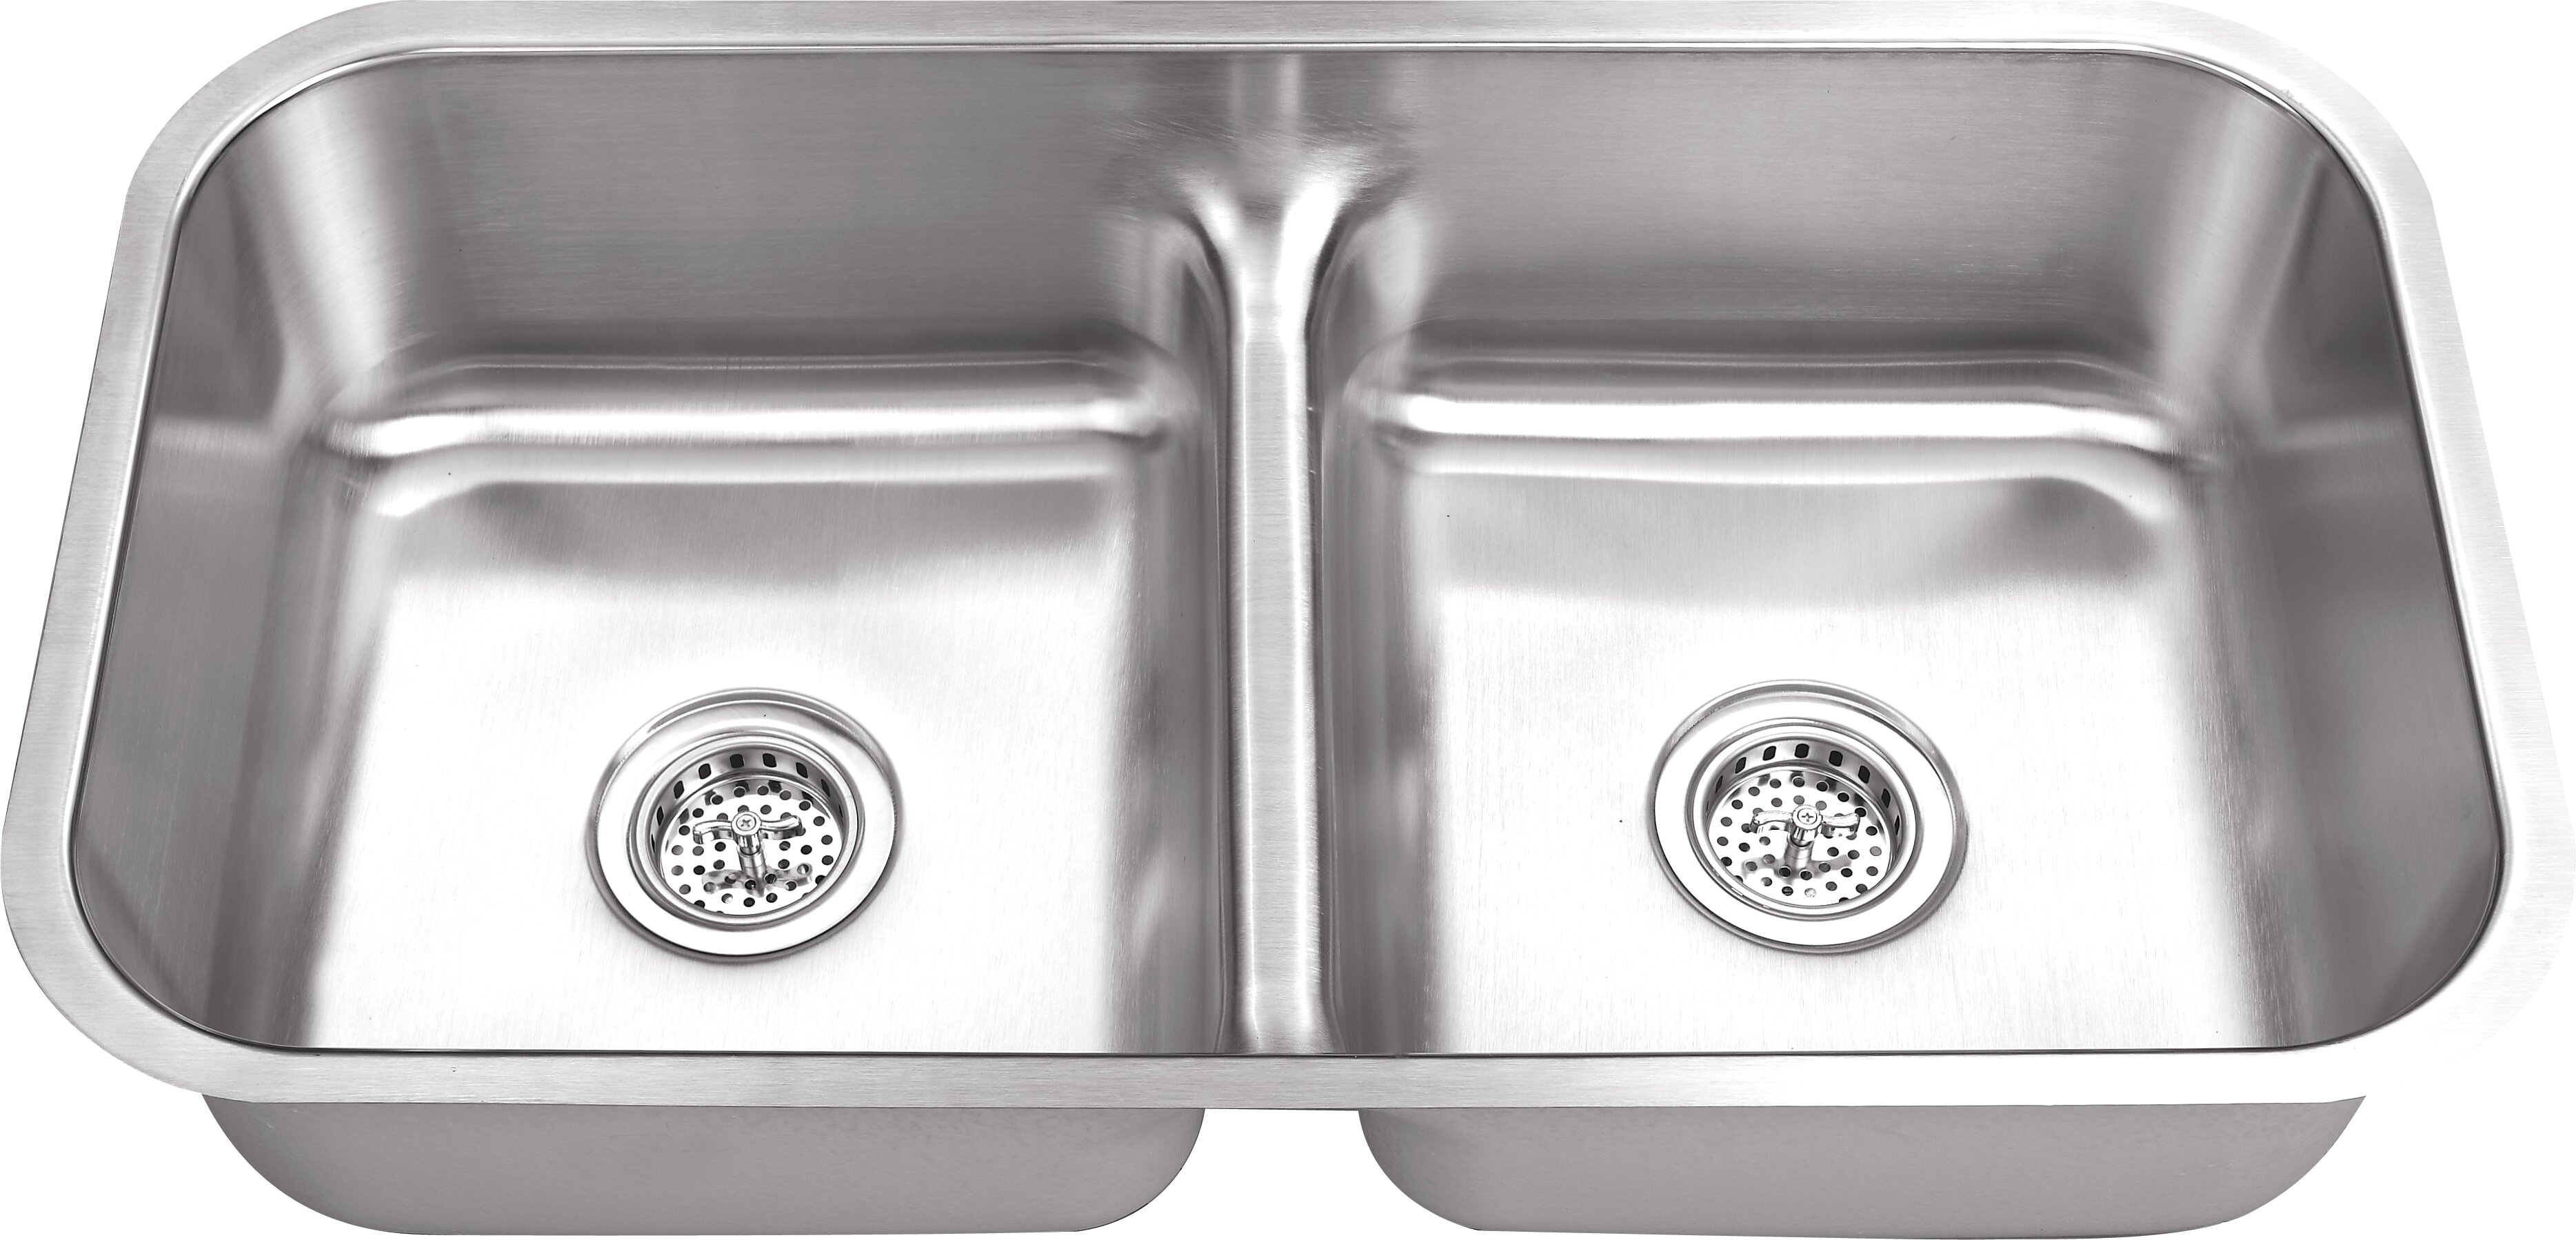 Kitchen Sinks Stainless Steel | Wholesale Kitchen Sinks Stainless Steel | Stainless Steel Farmhouse Kitchen Sinks